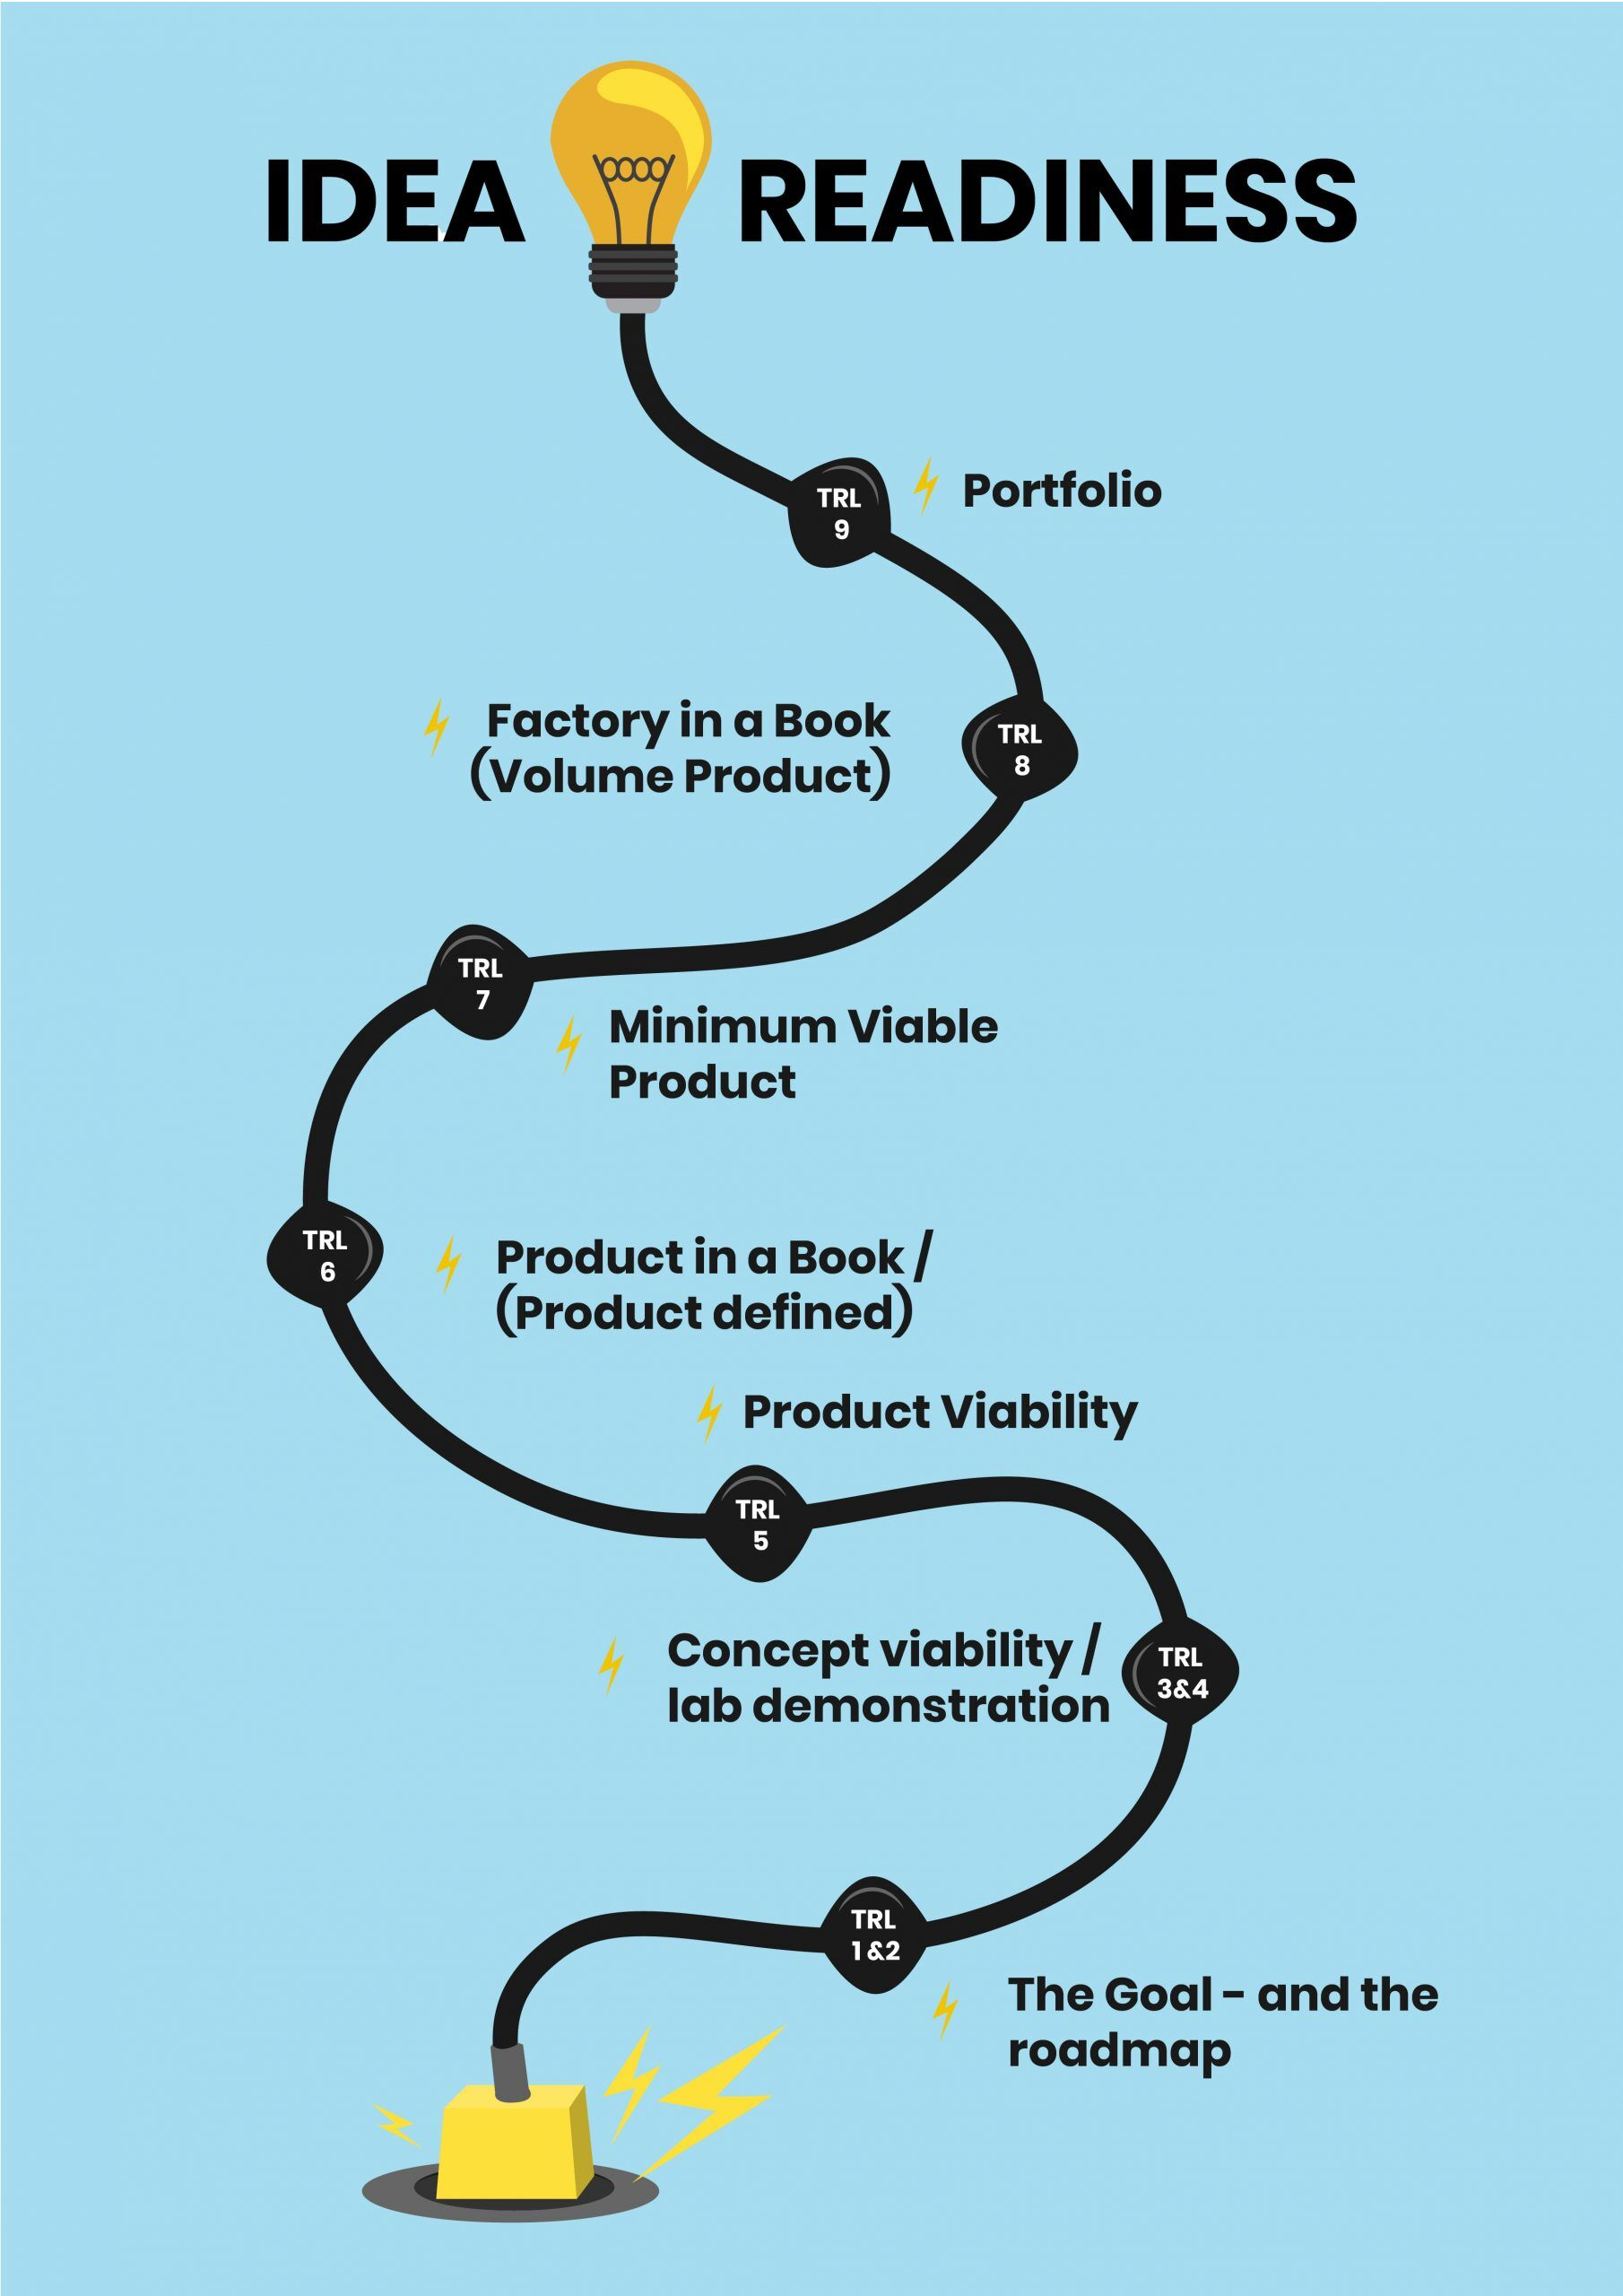 readiness, How Ready is Your Idea for the Market?, Innovolo Ltd